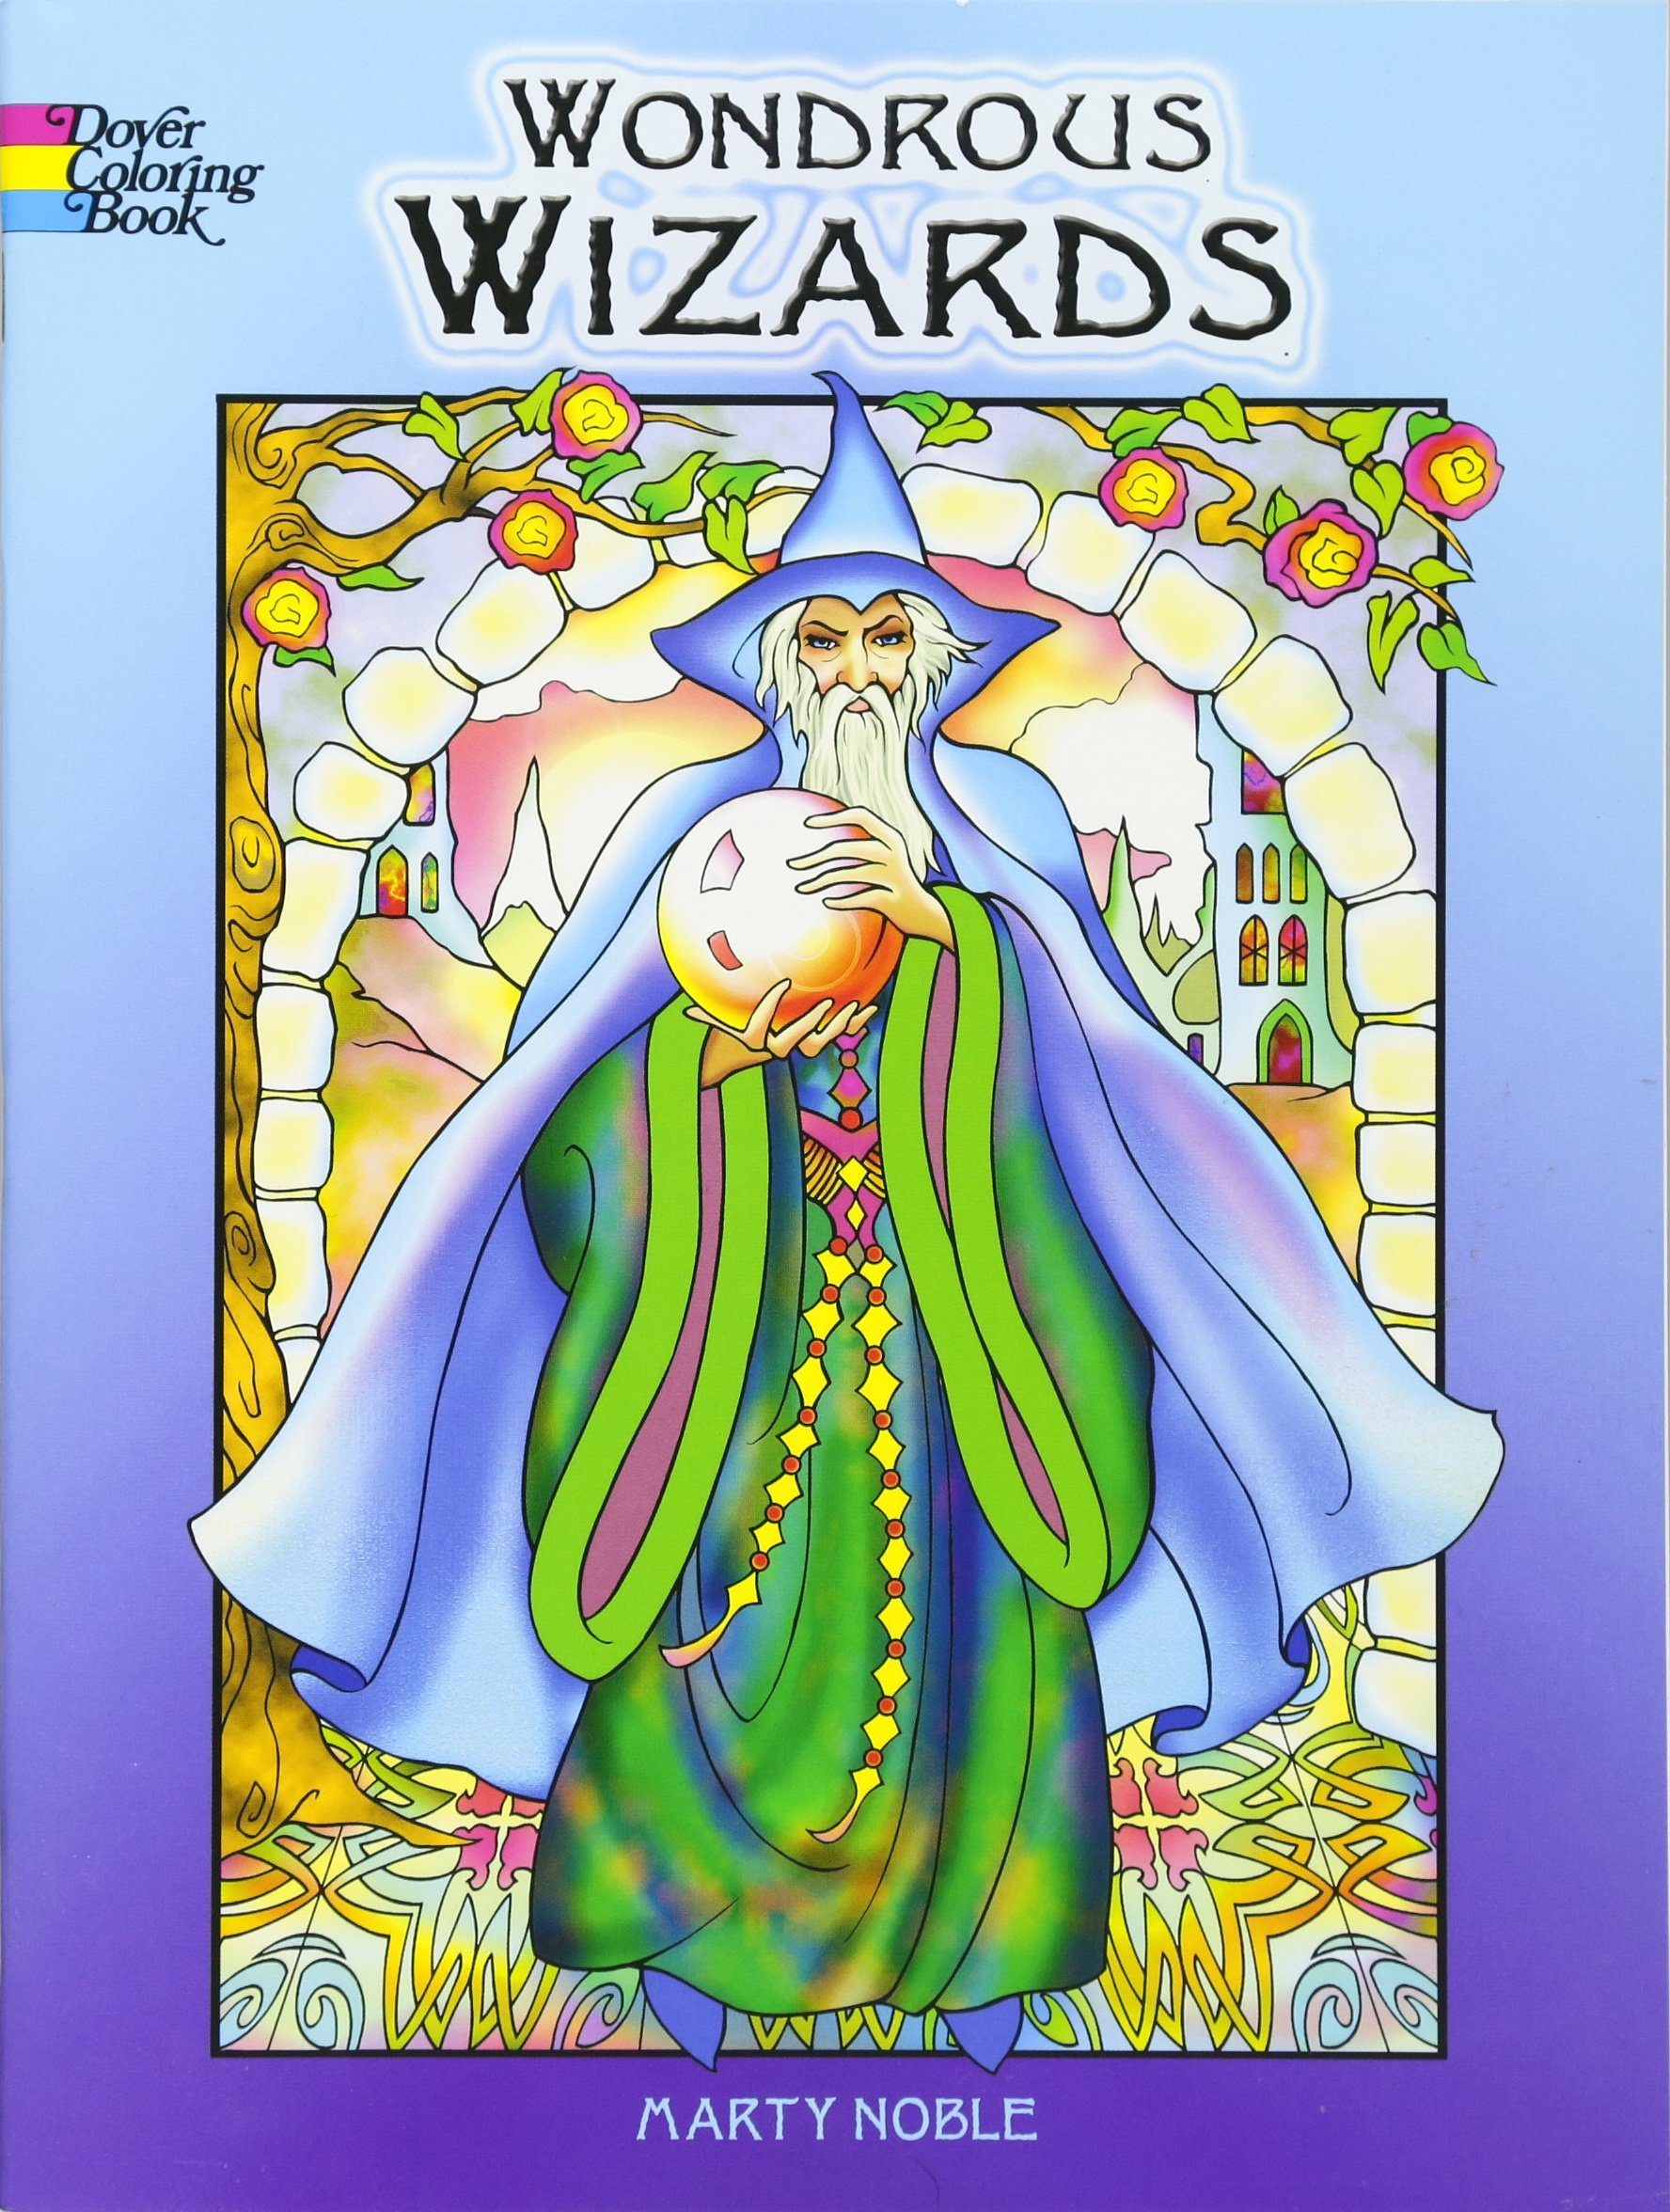 - Wondrous Wizards (Dover Coloring Books) - Buy Online In Bahrain